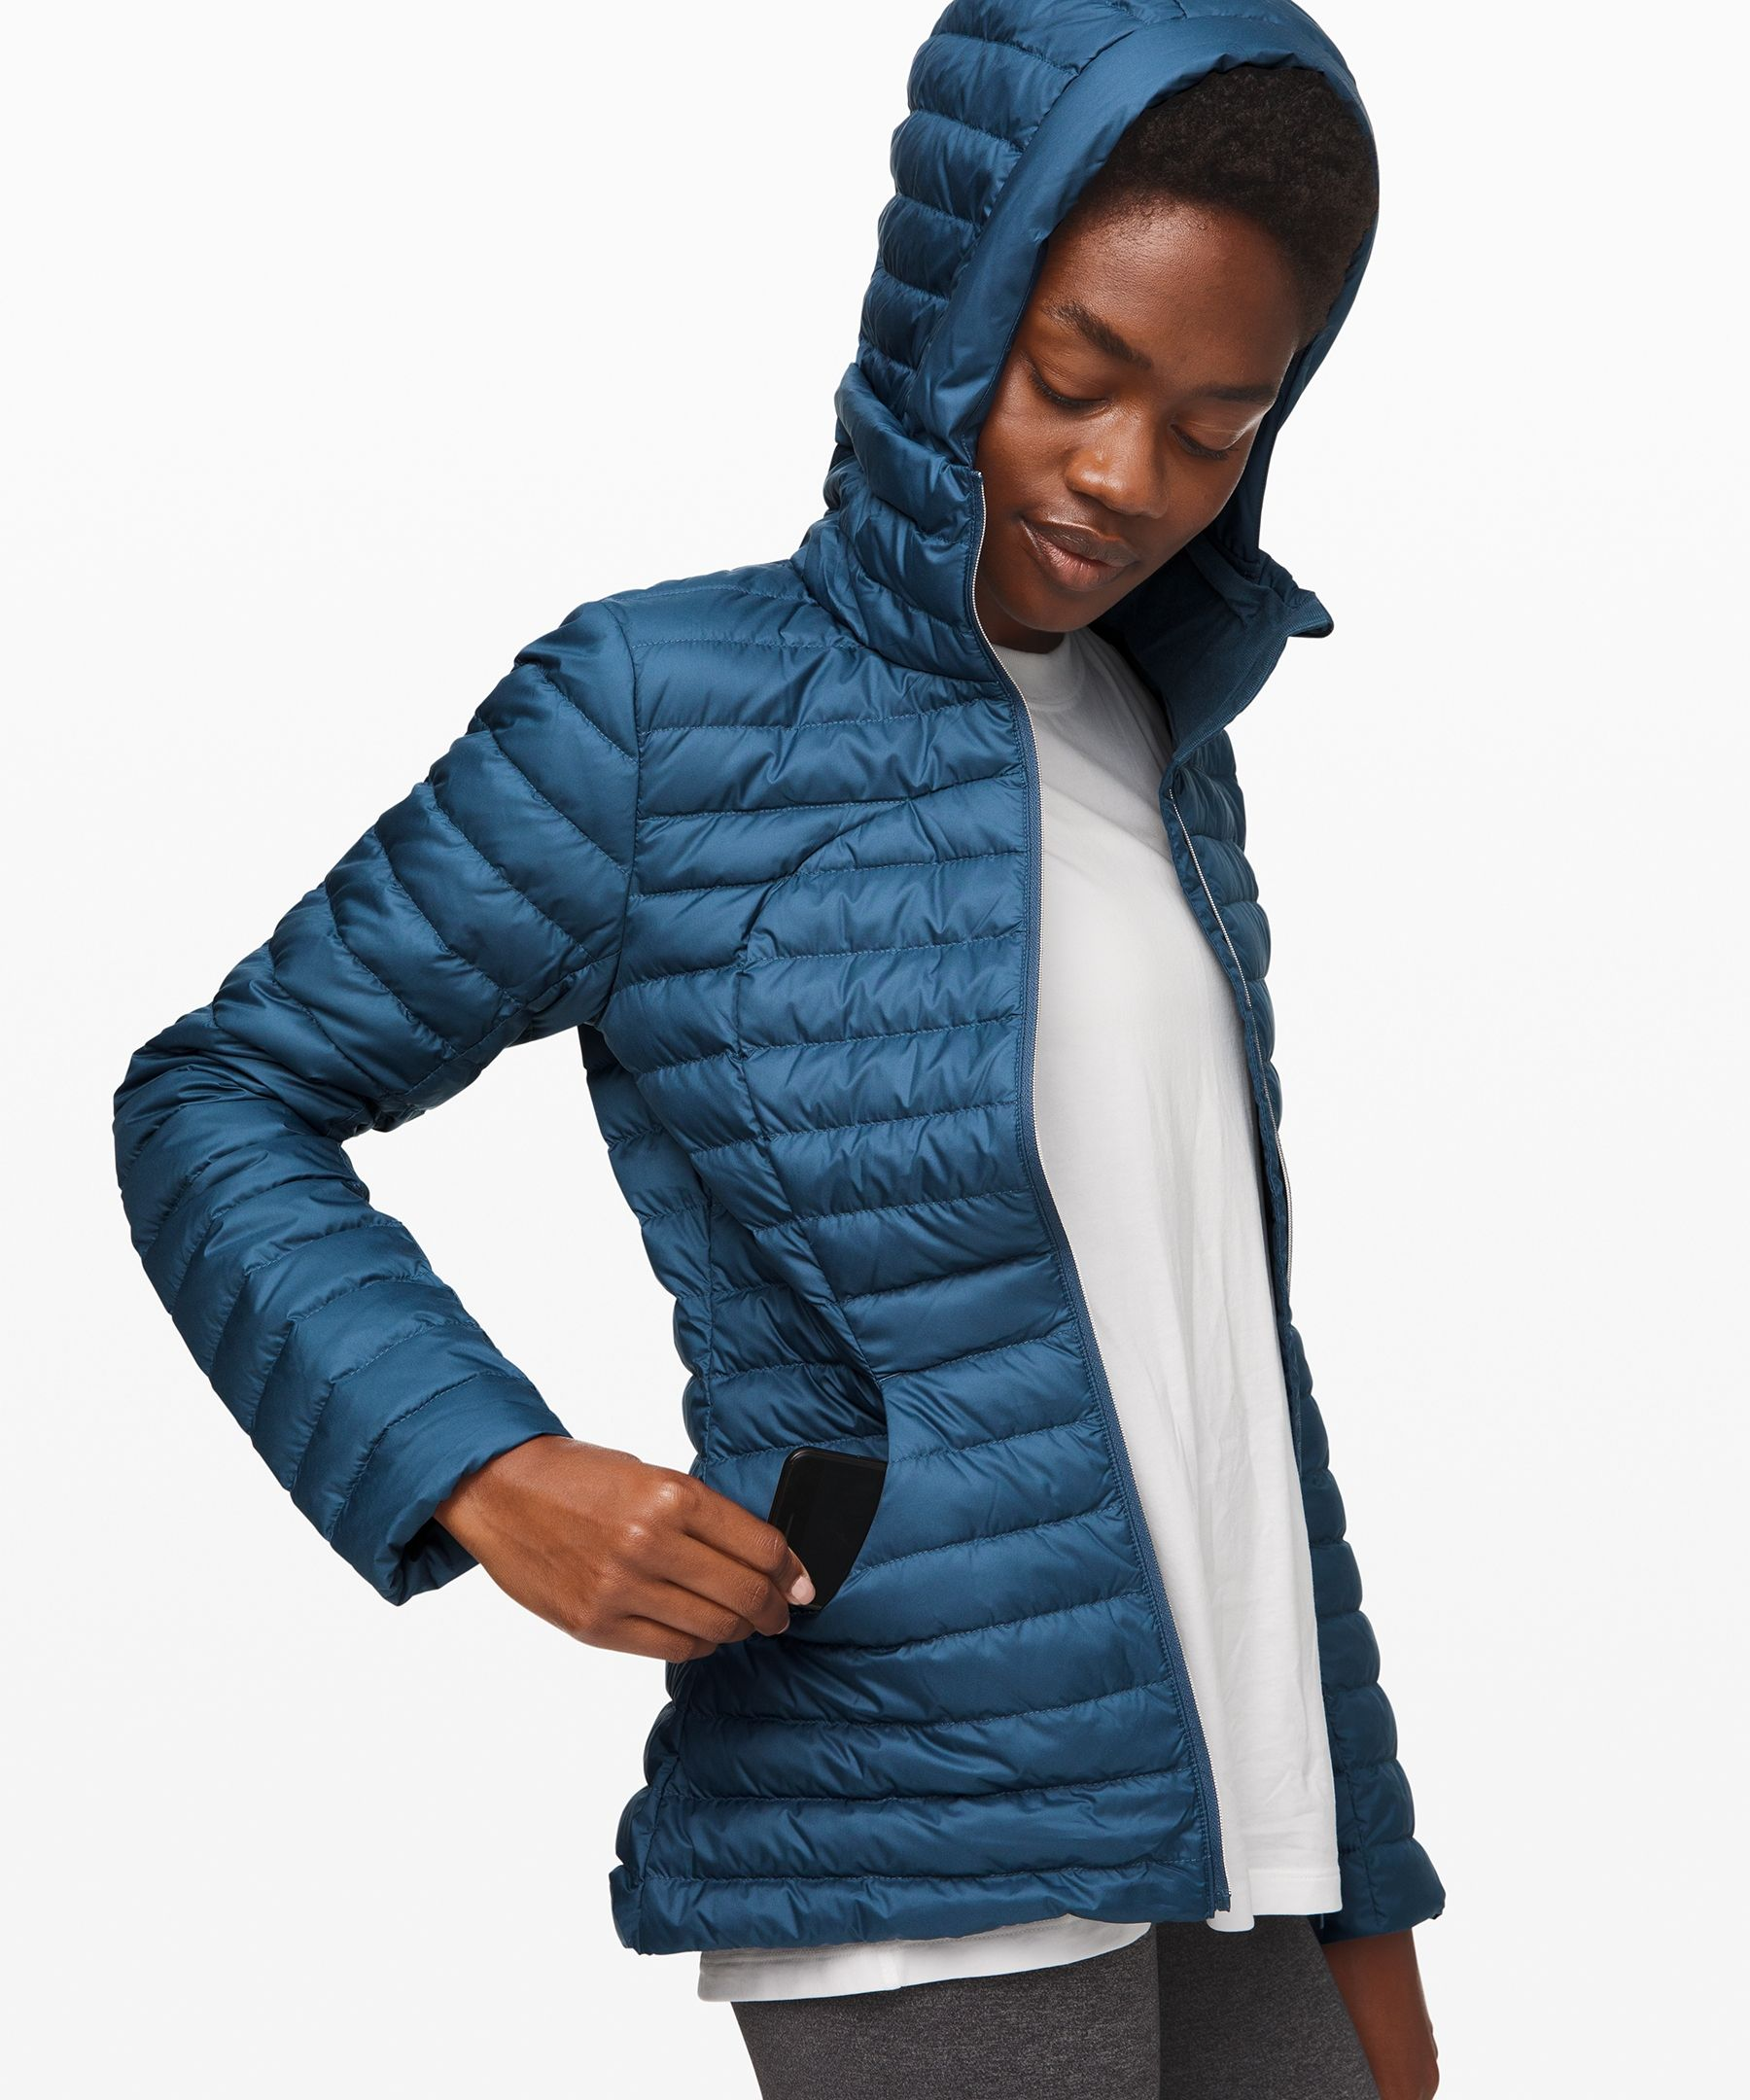 Pack It Down Jacket Ad Sponsored Pack Jacket Jackets For Women Down Jacket Outerwear Jackets [ 2160 x 1800 Pixel ]